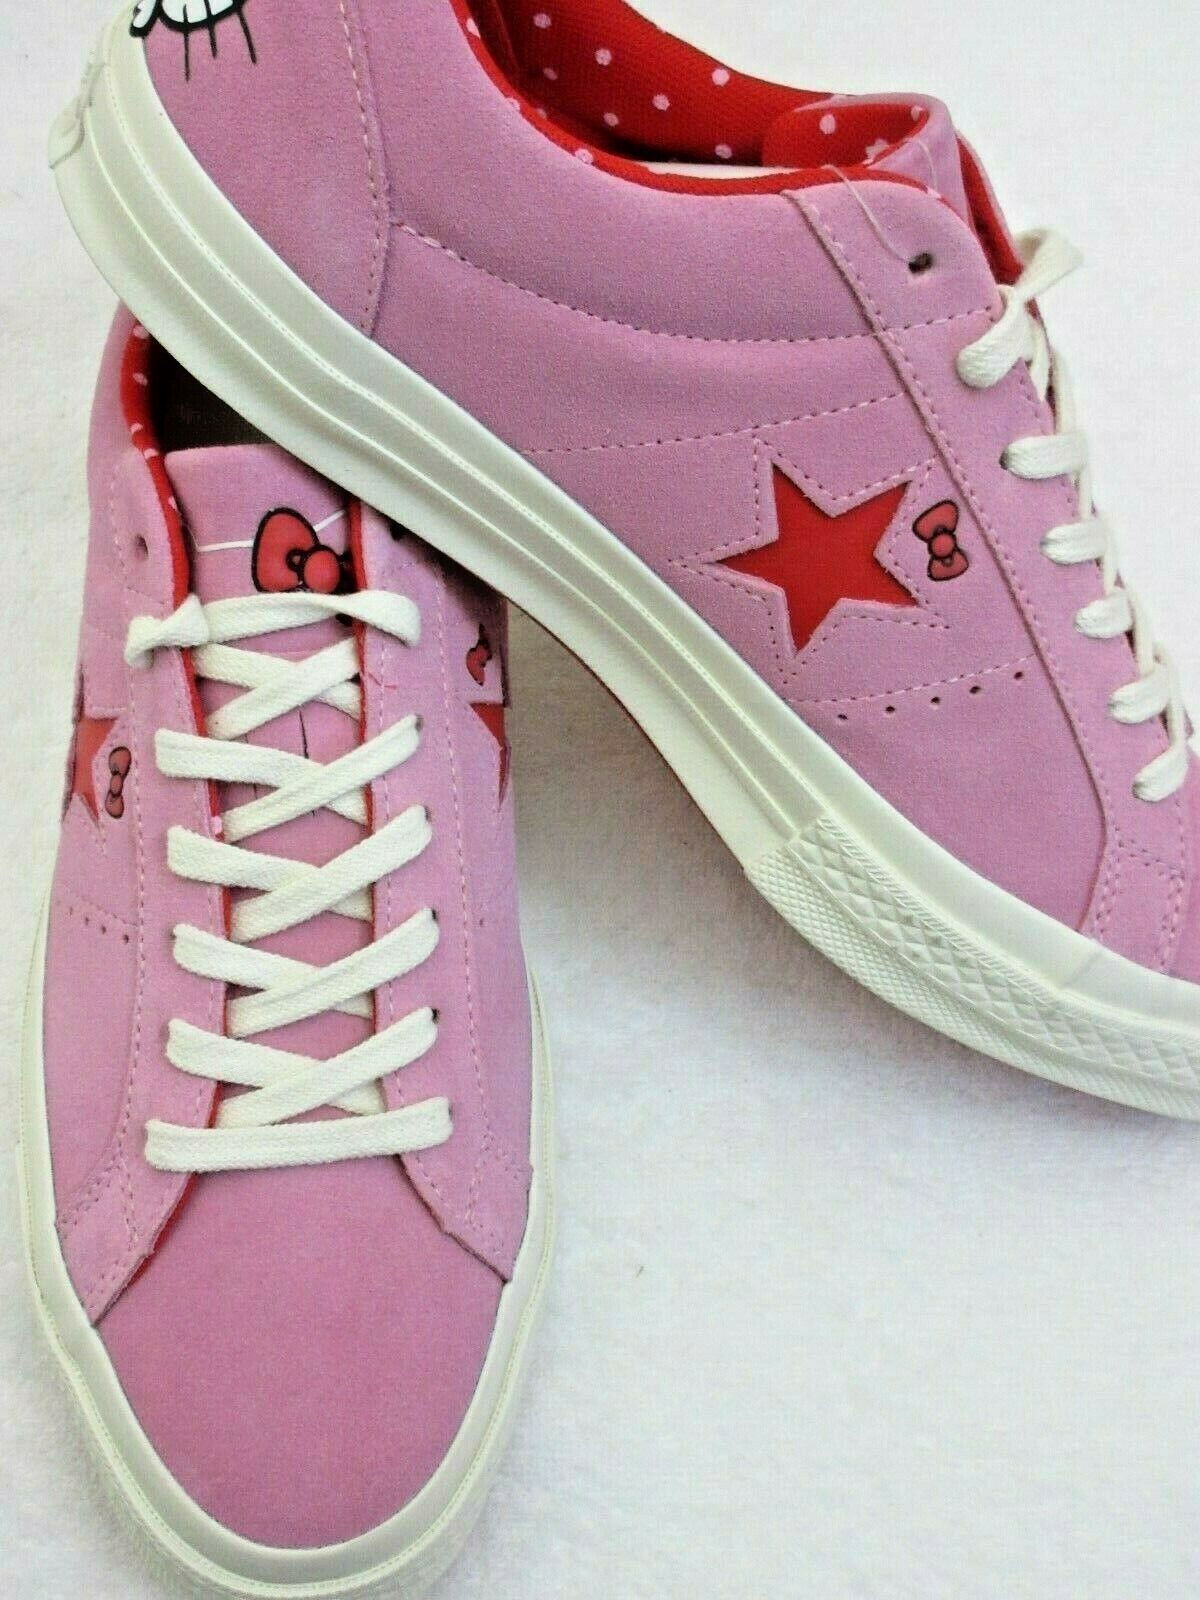 Converse One Star Ox Mens Hello Kitty Pink Prism Red Suede Shoes Size 10 New  image 5